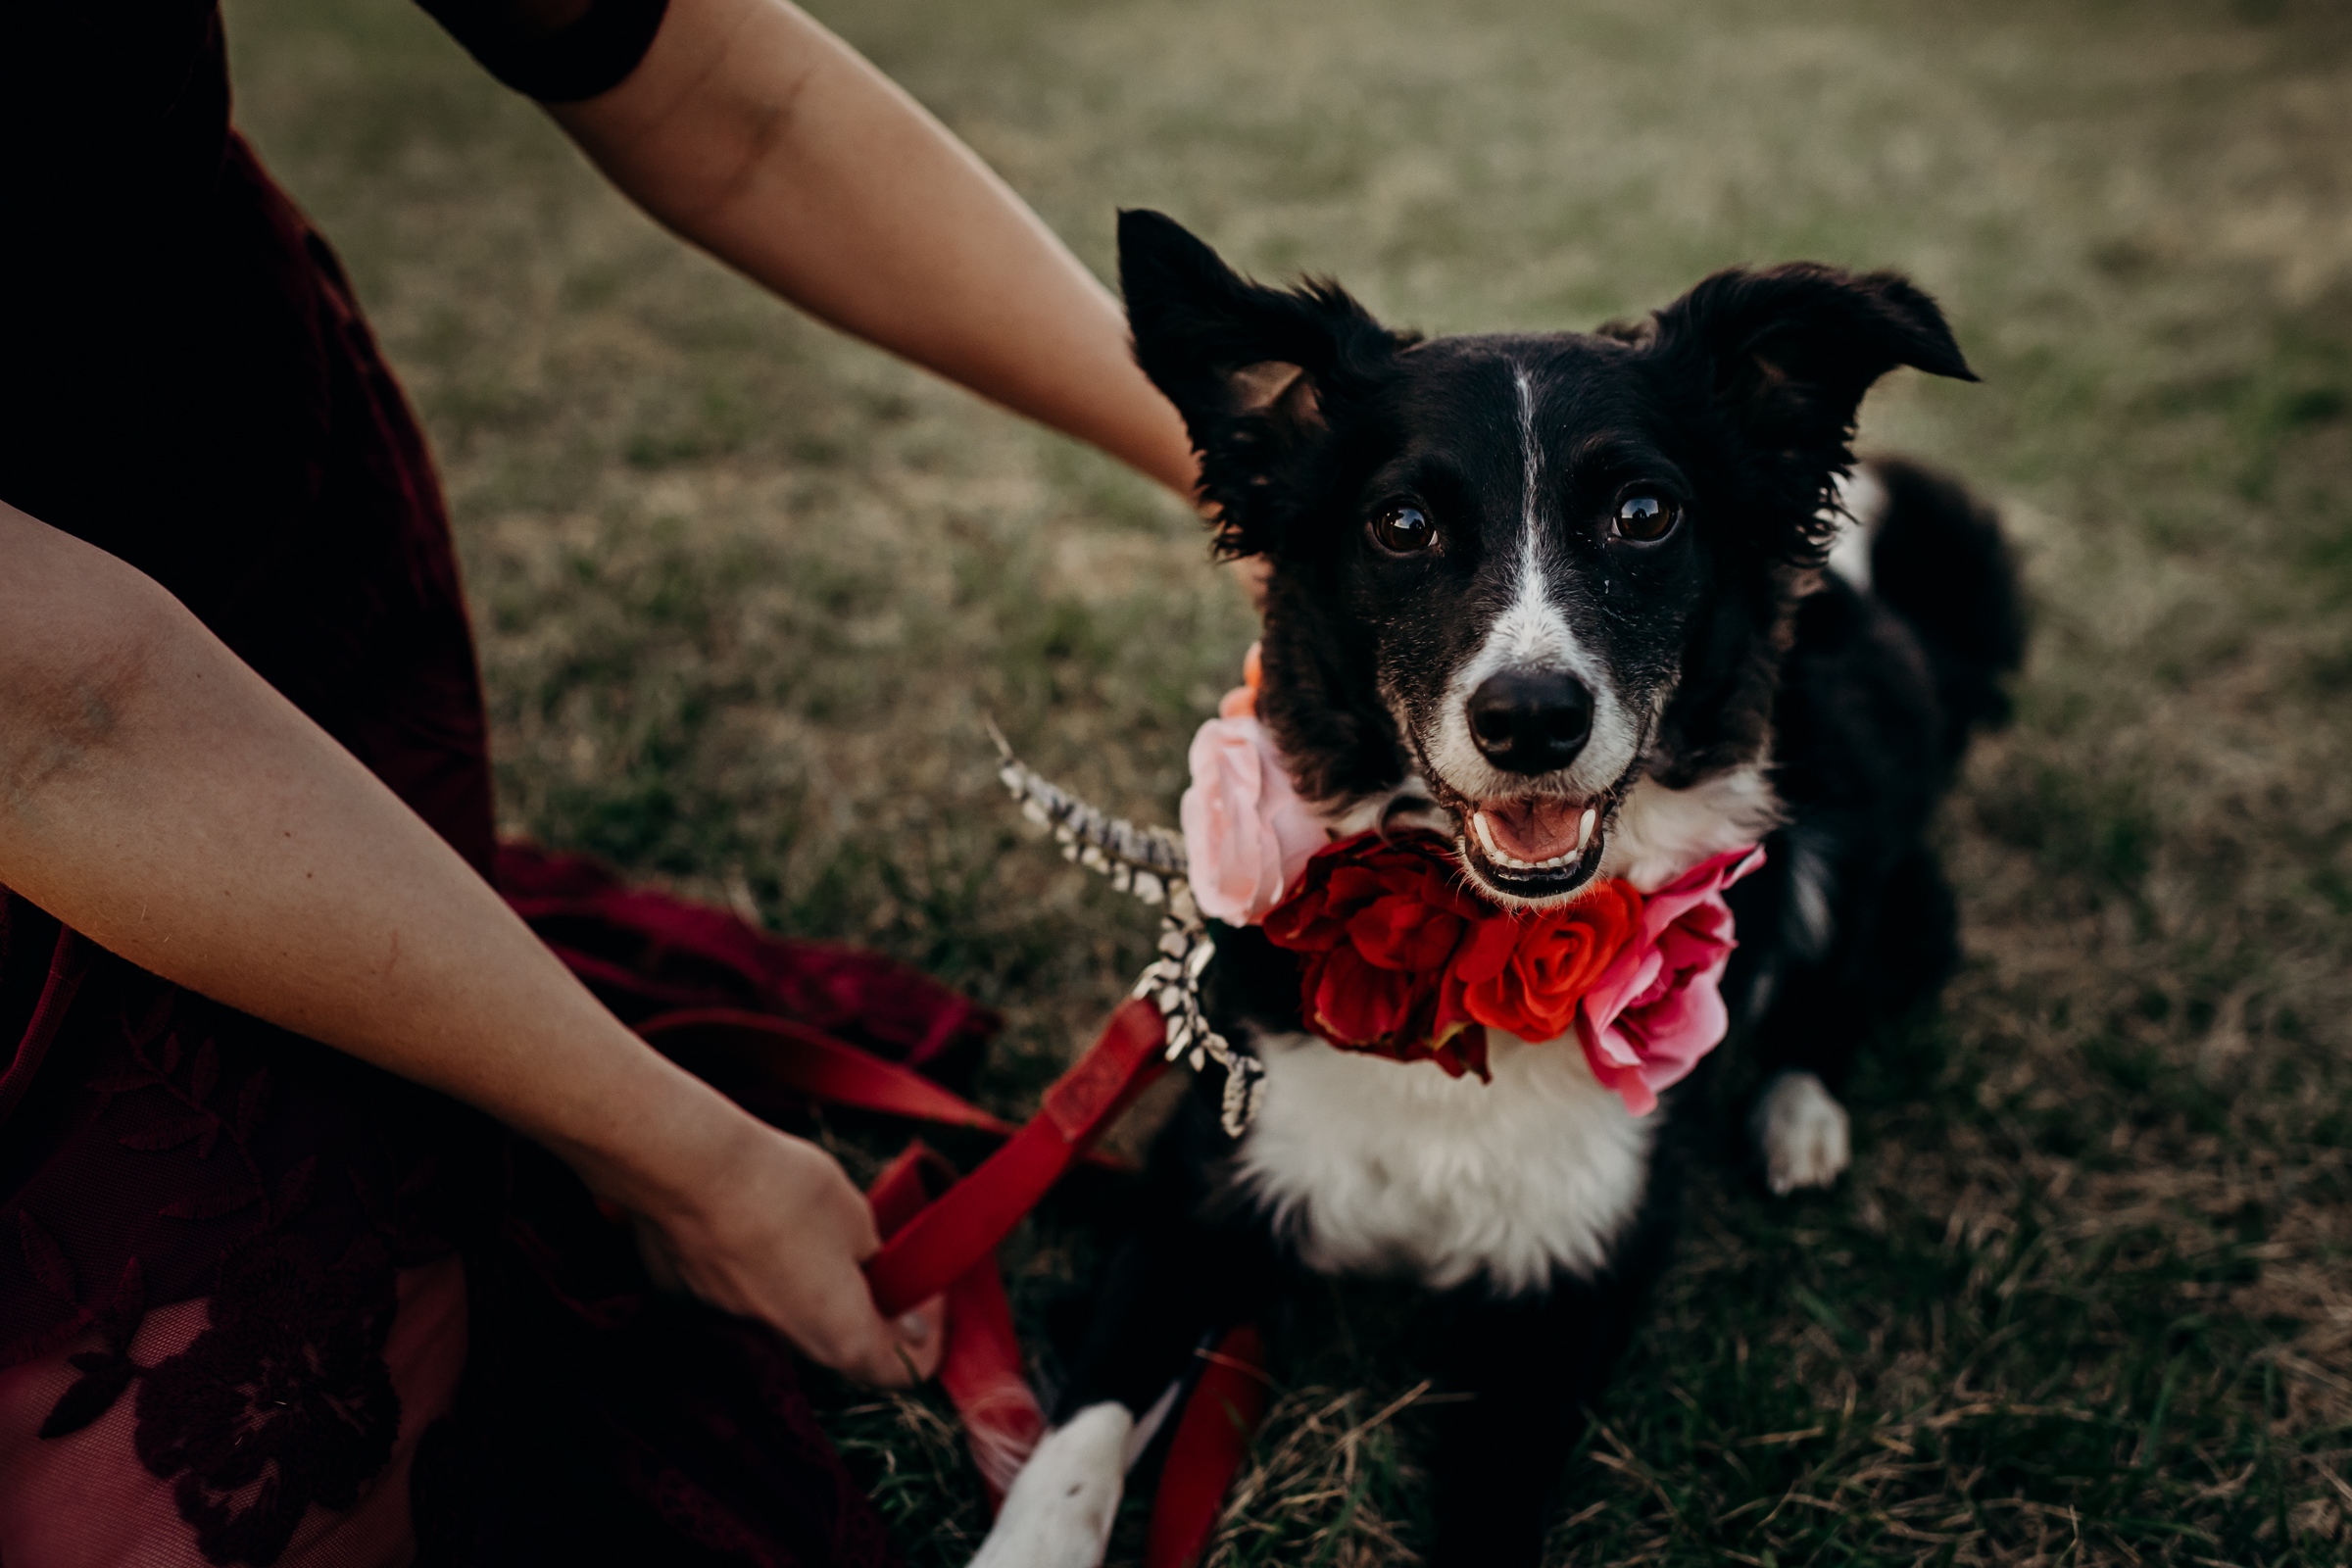 Dog wears red and pink flower crown around her neck.